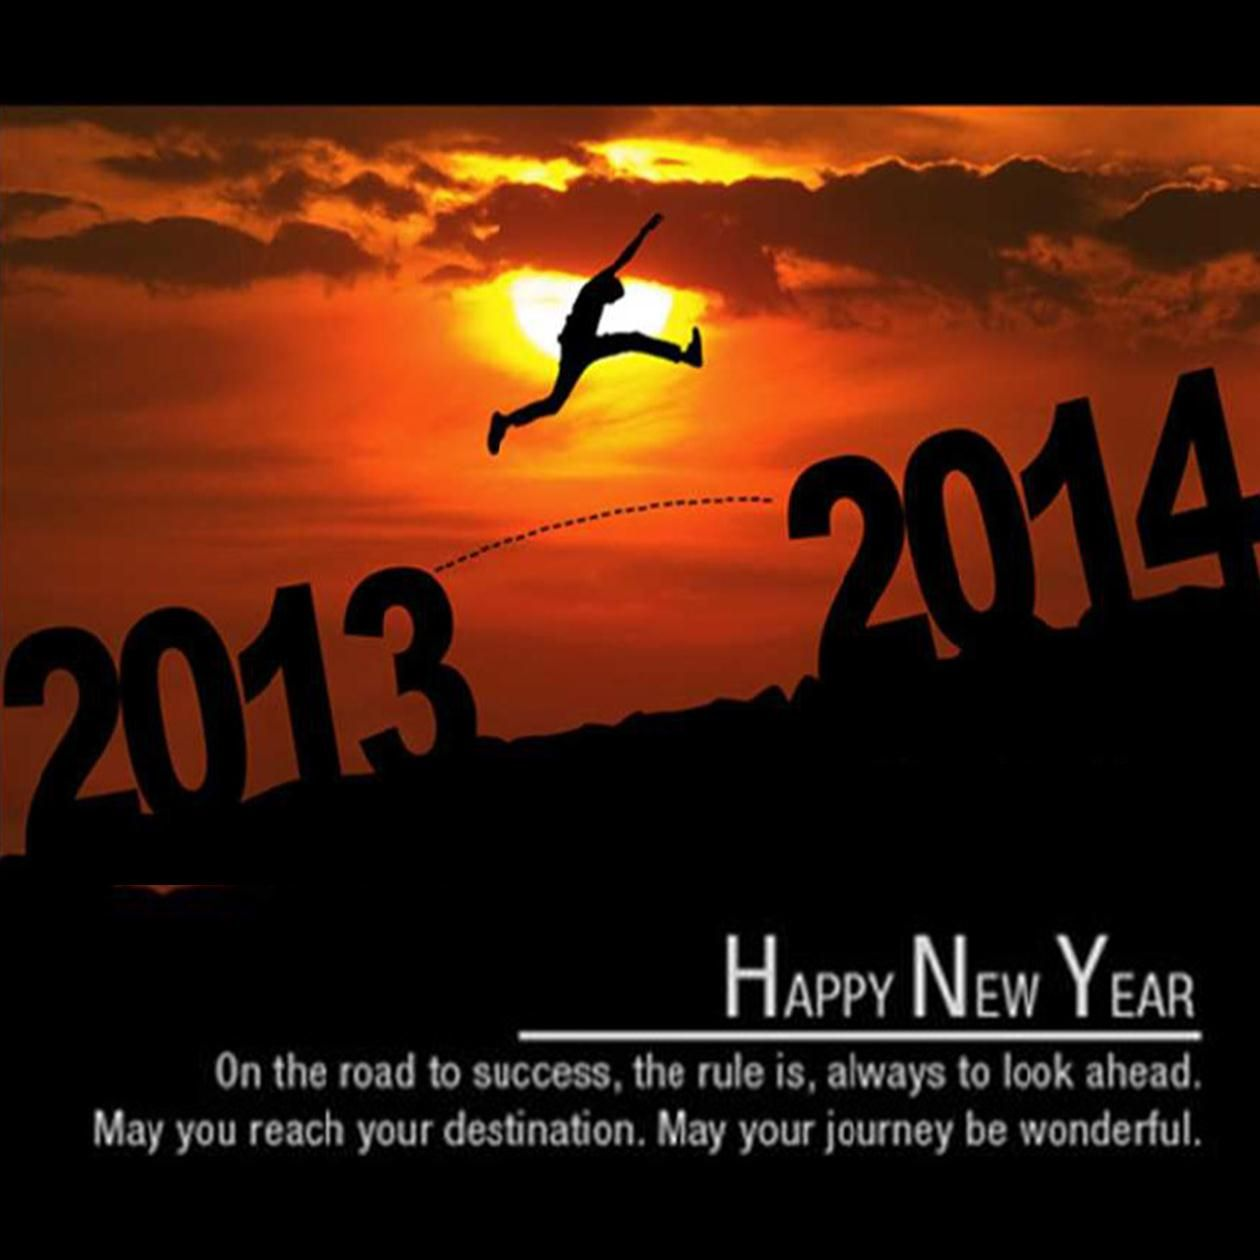 Fidelity Stock Quotes Happy New Year  2014 From Fidelity National Title Company